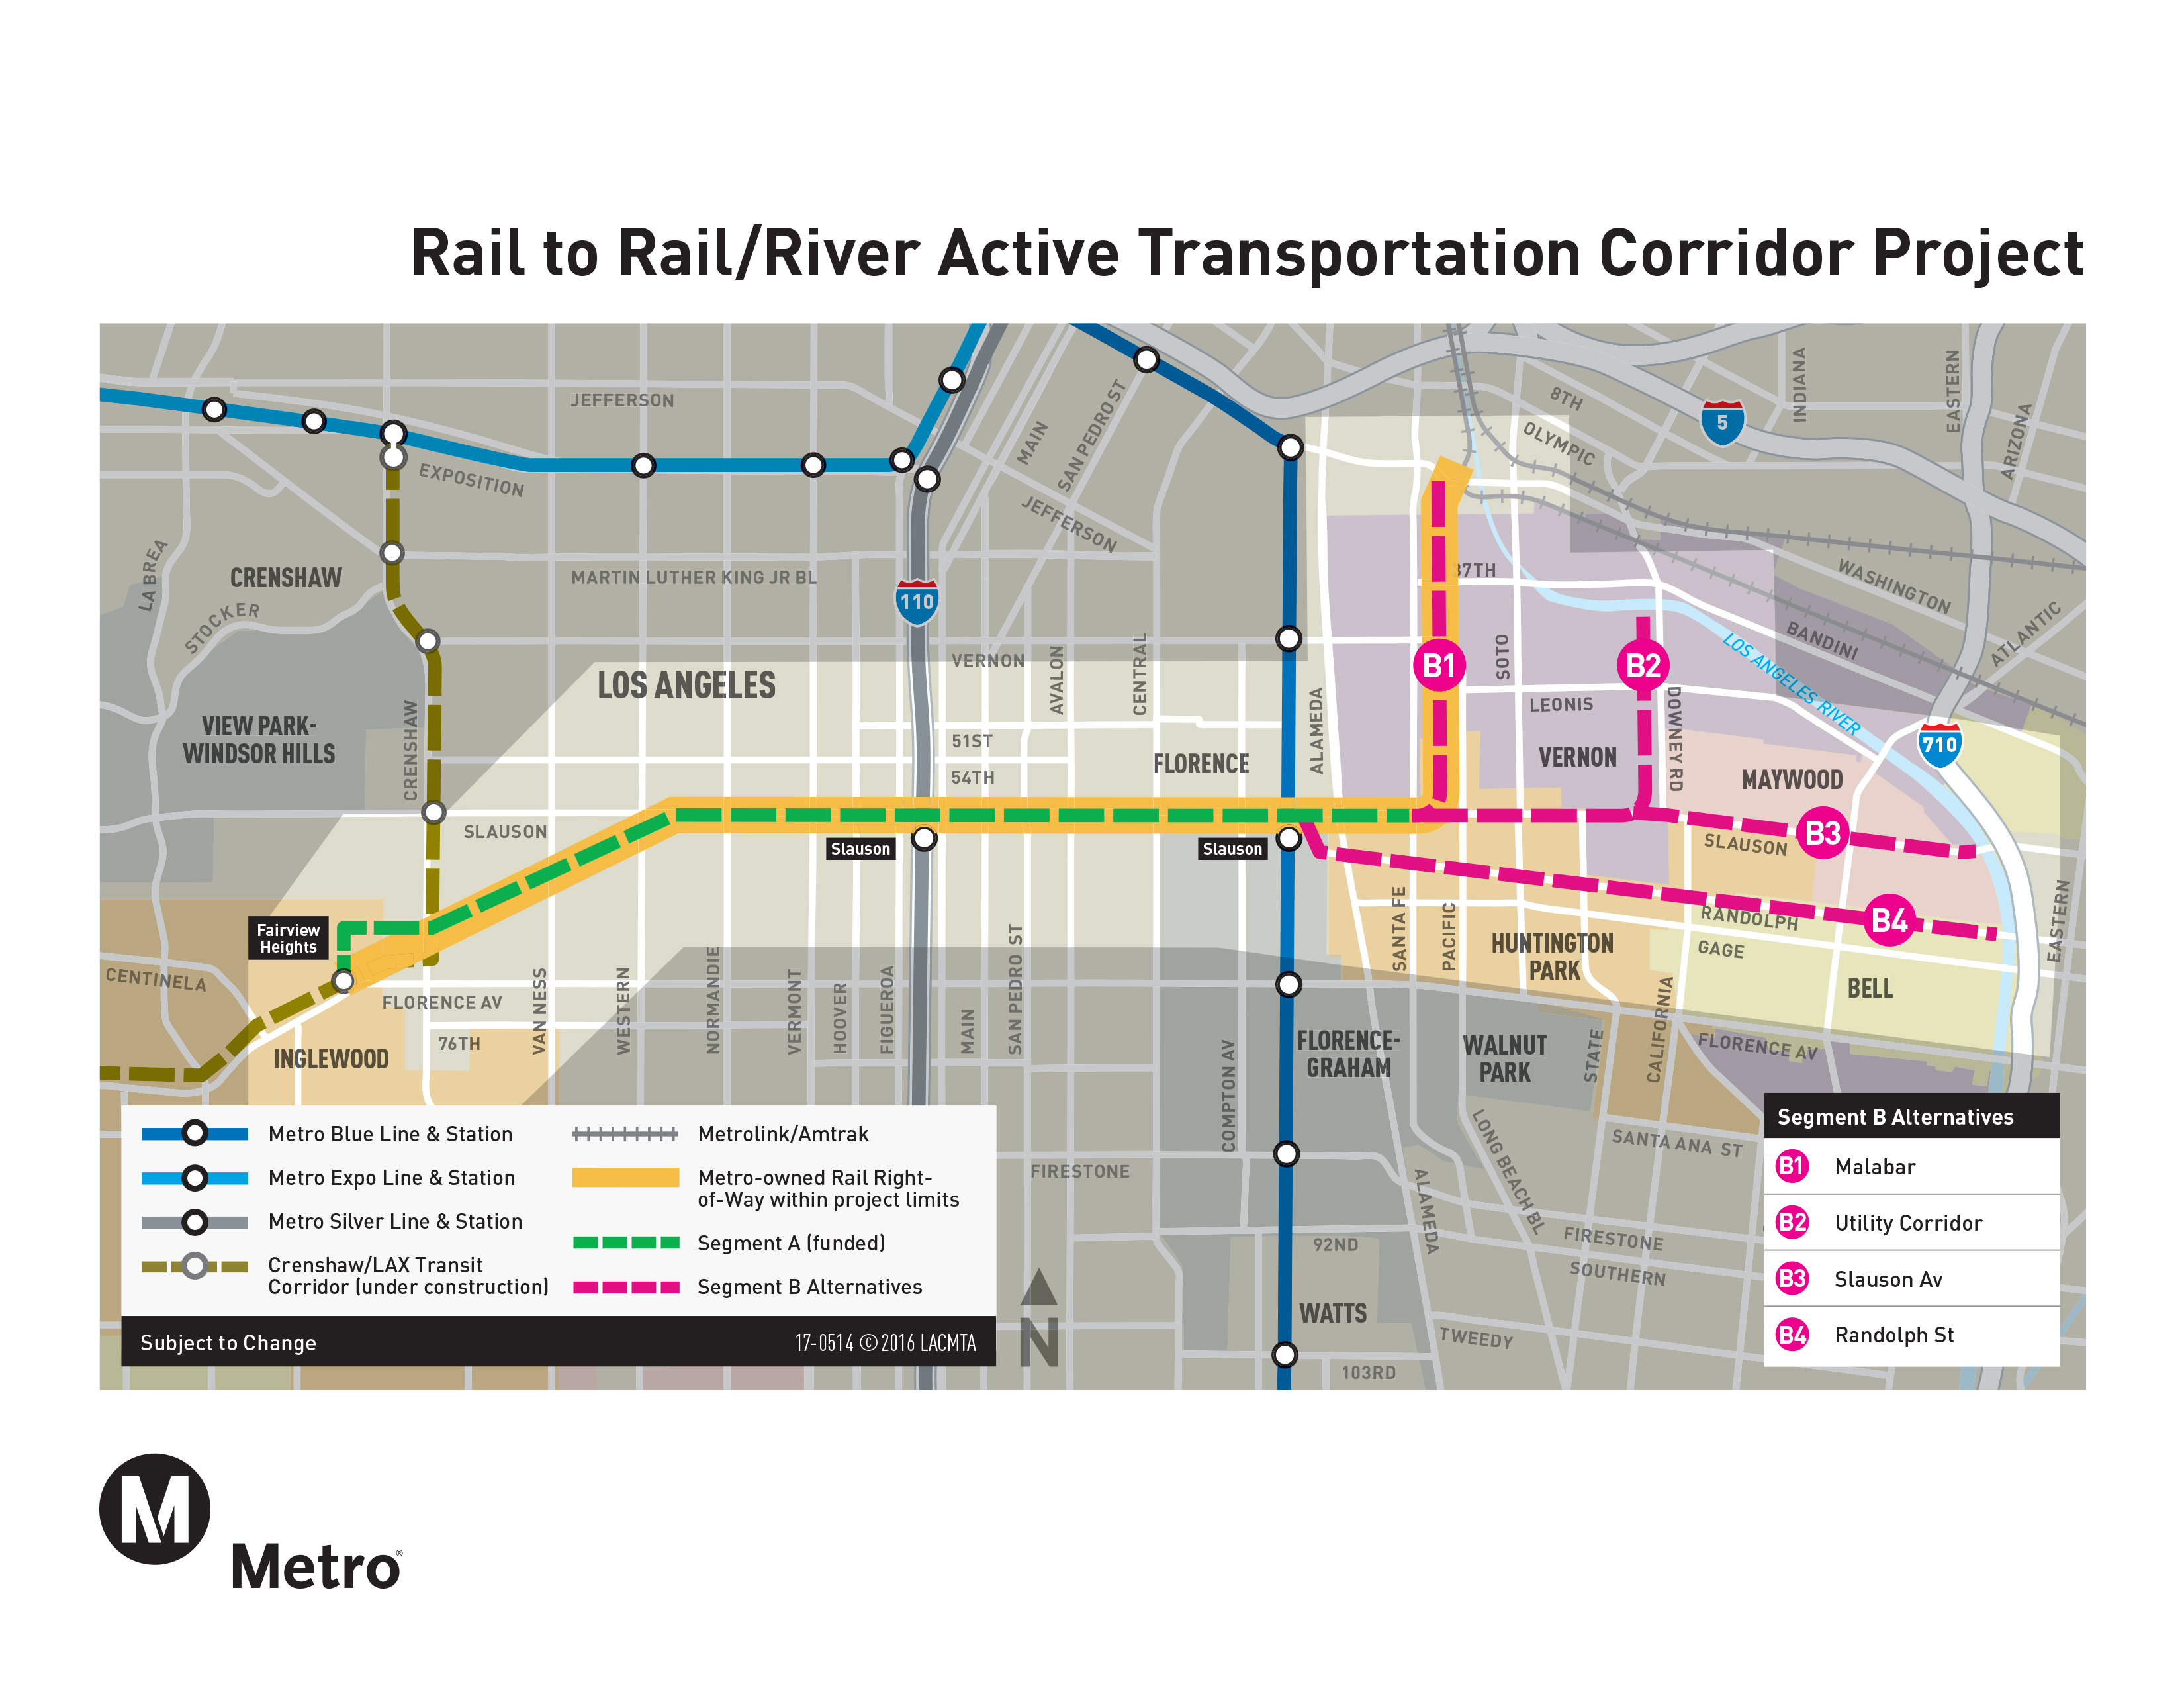 Community meetings in Huntington Park on March 23 for Rail to River